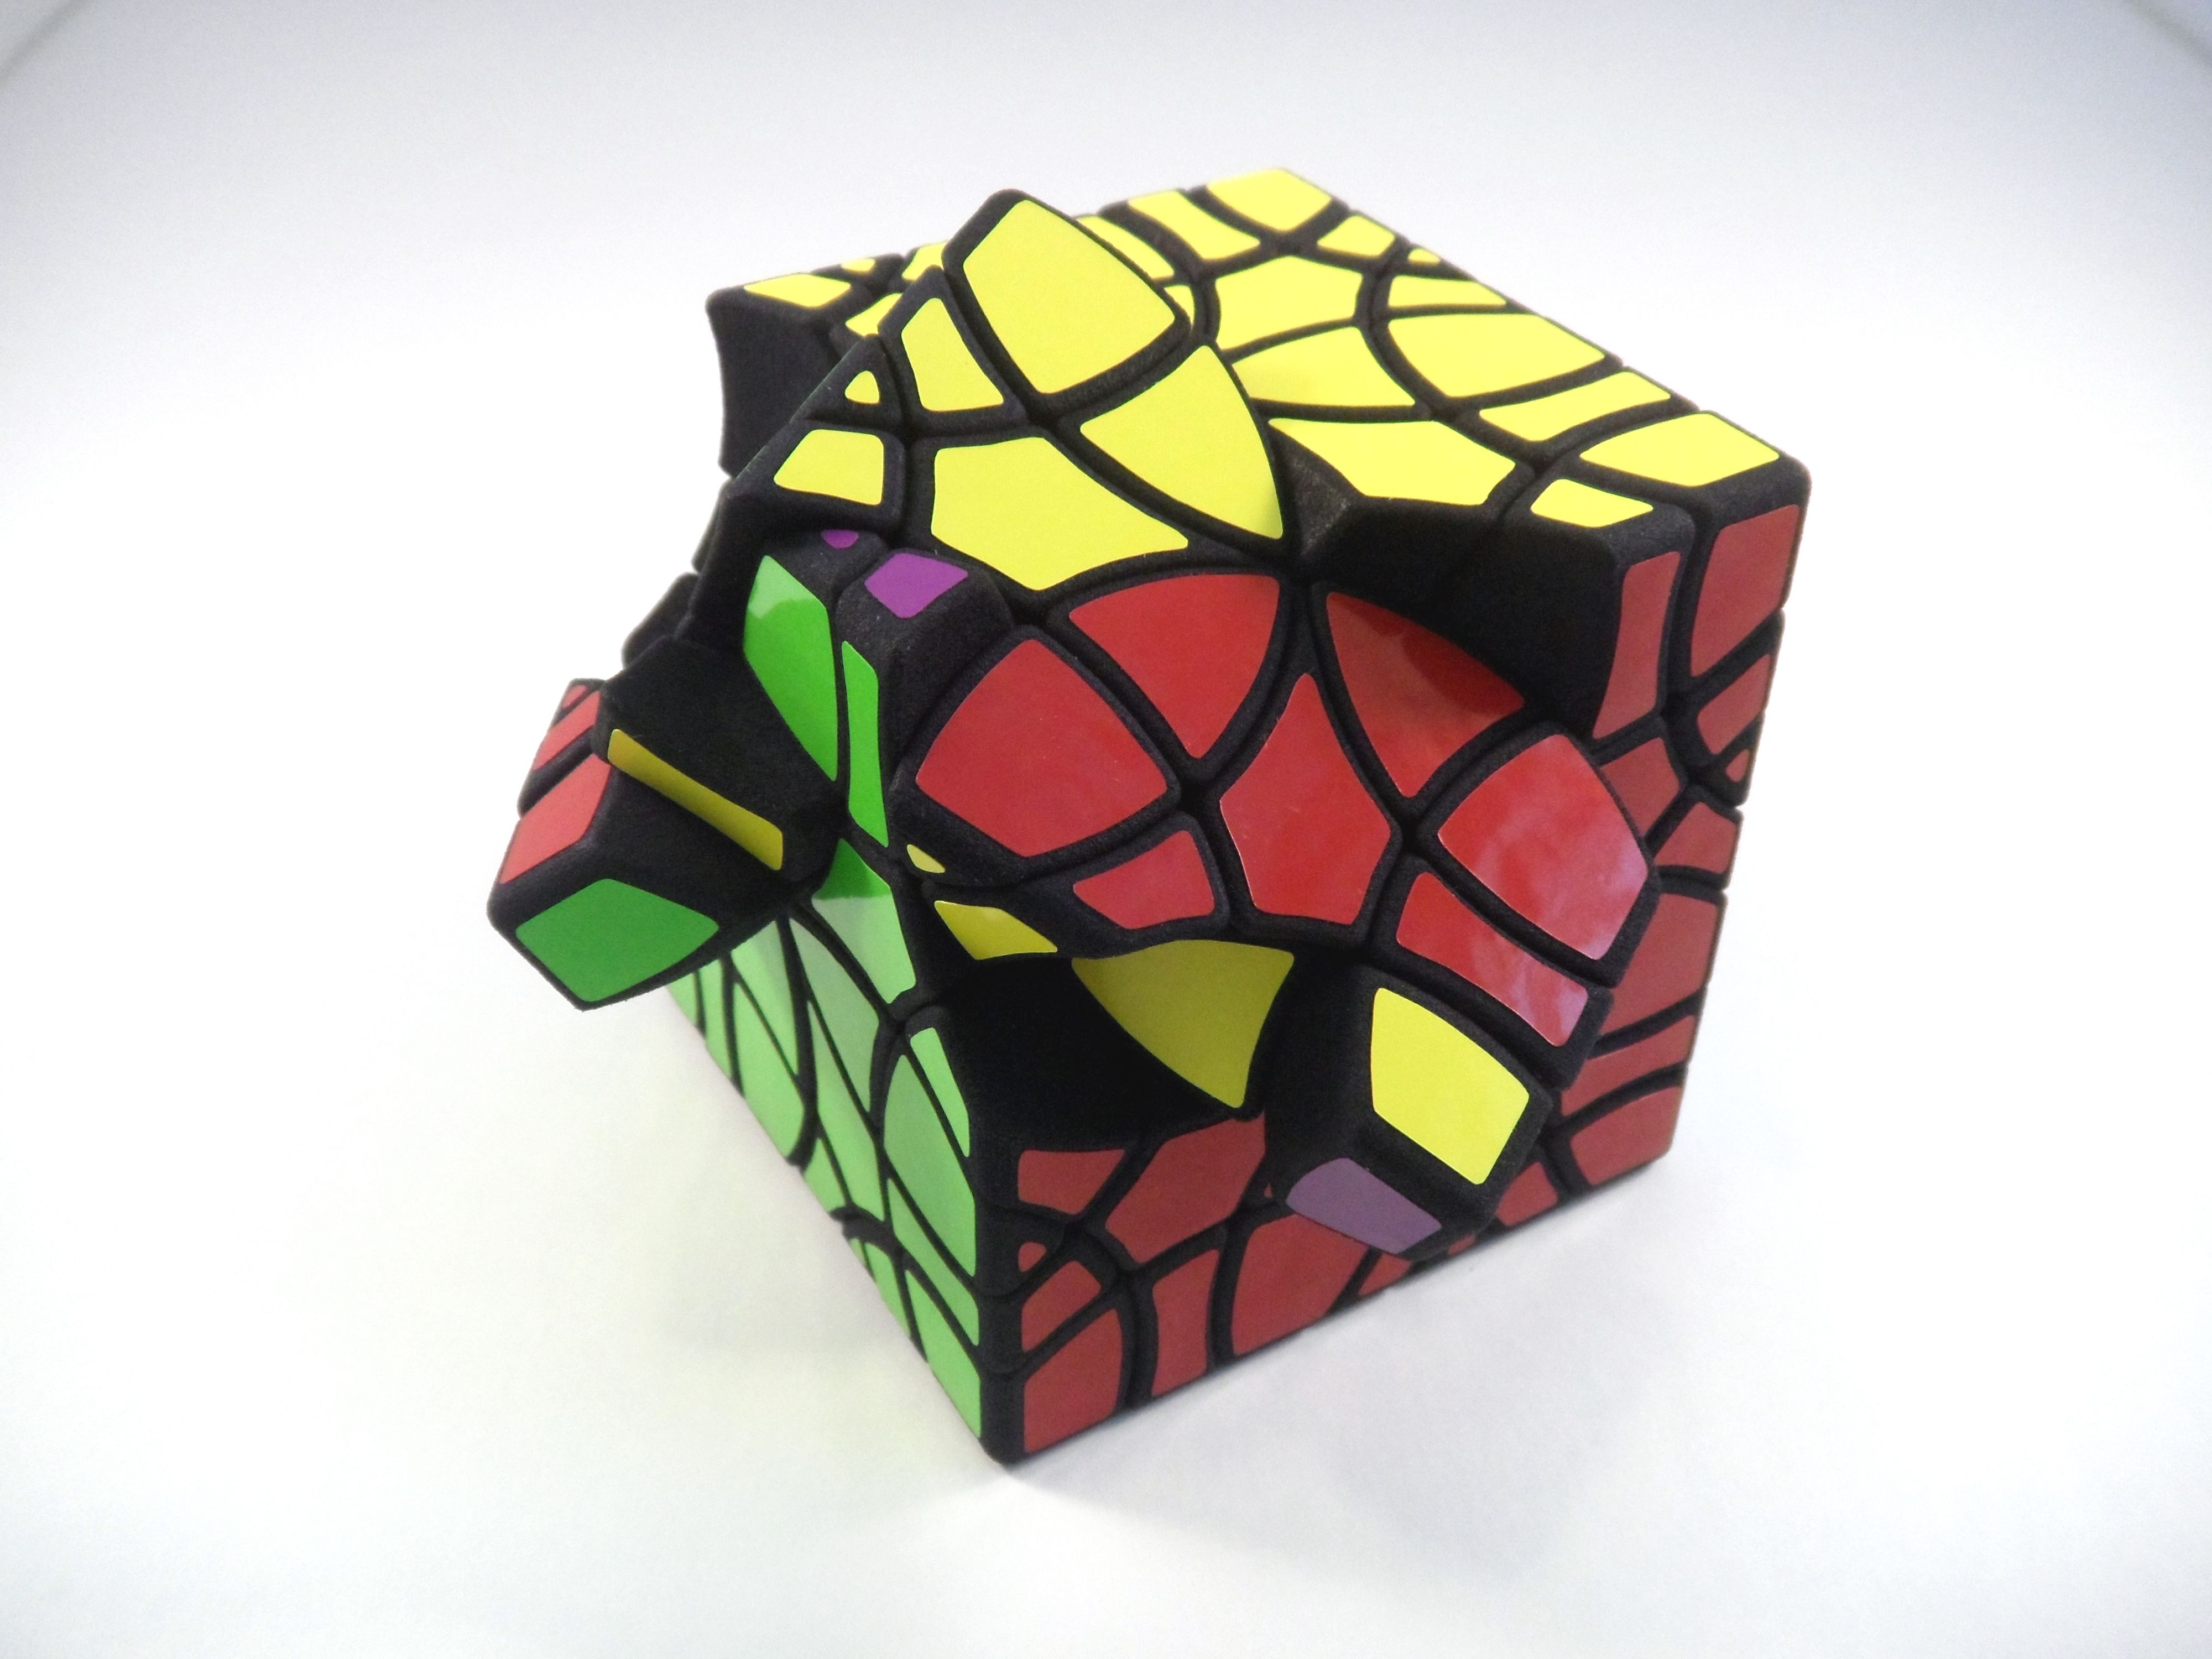 Polyamide 3D Printing at Its Best: Solving David Pitcher's 3D-Printed Puzzles